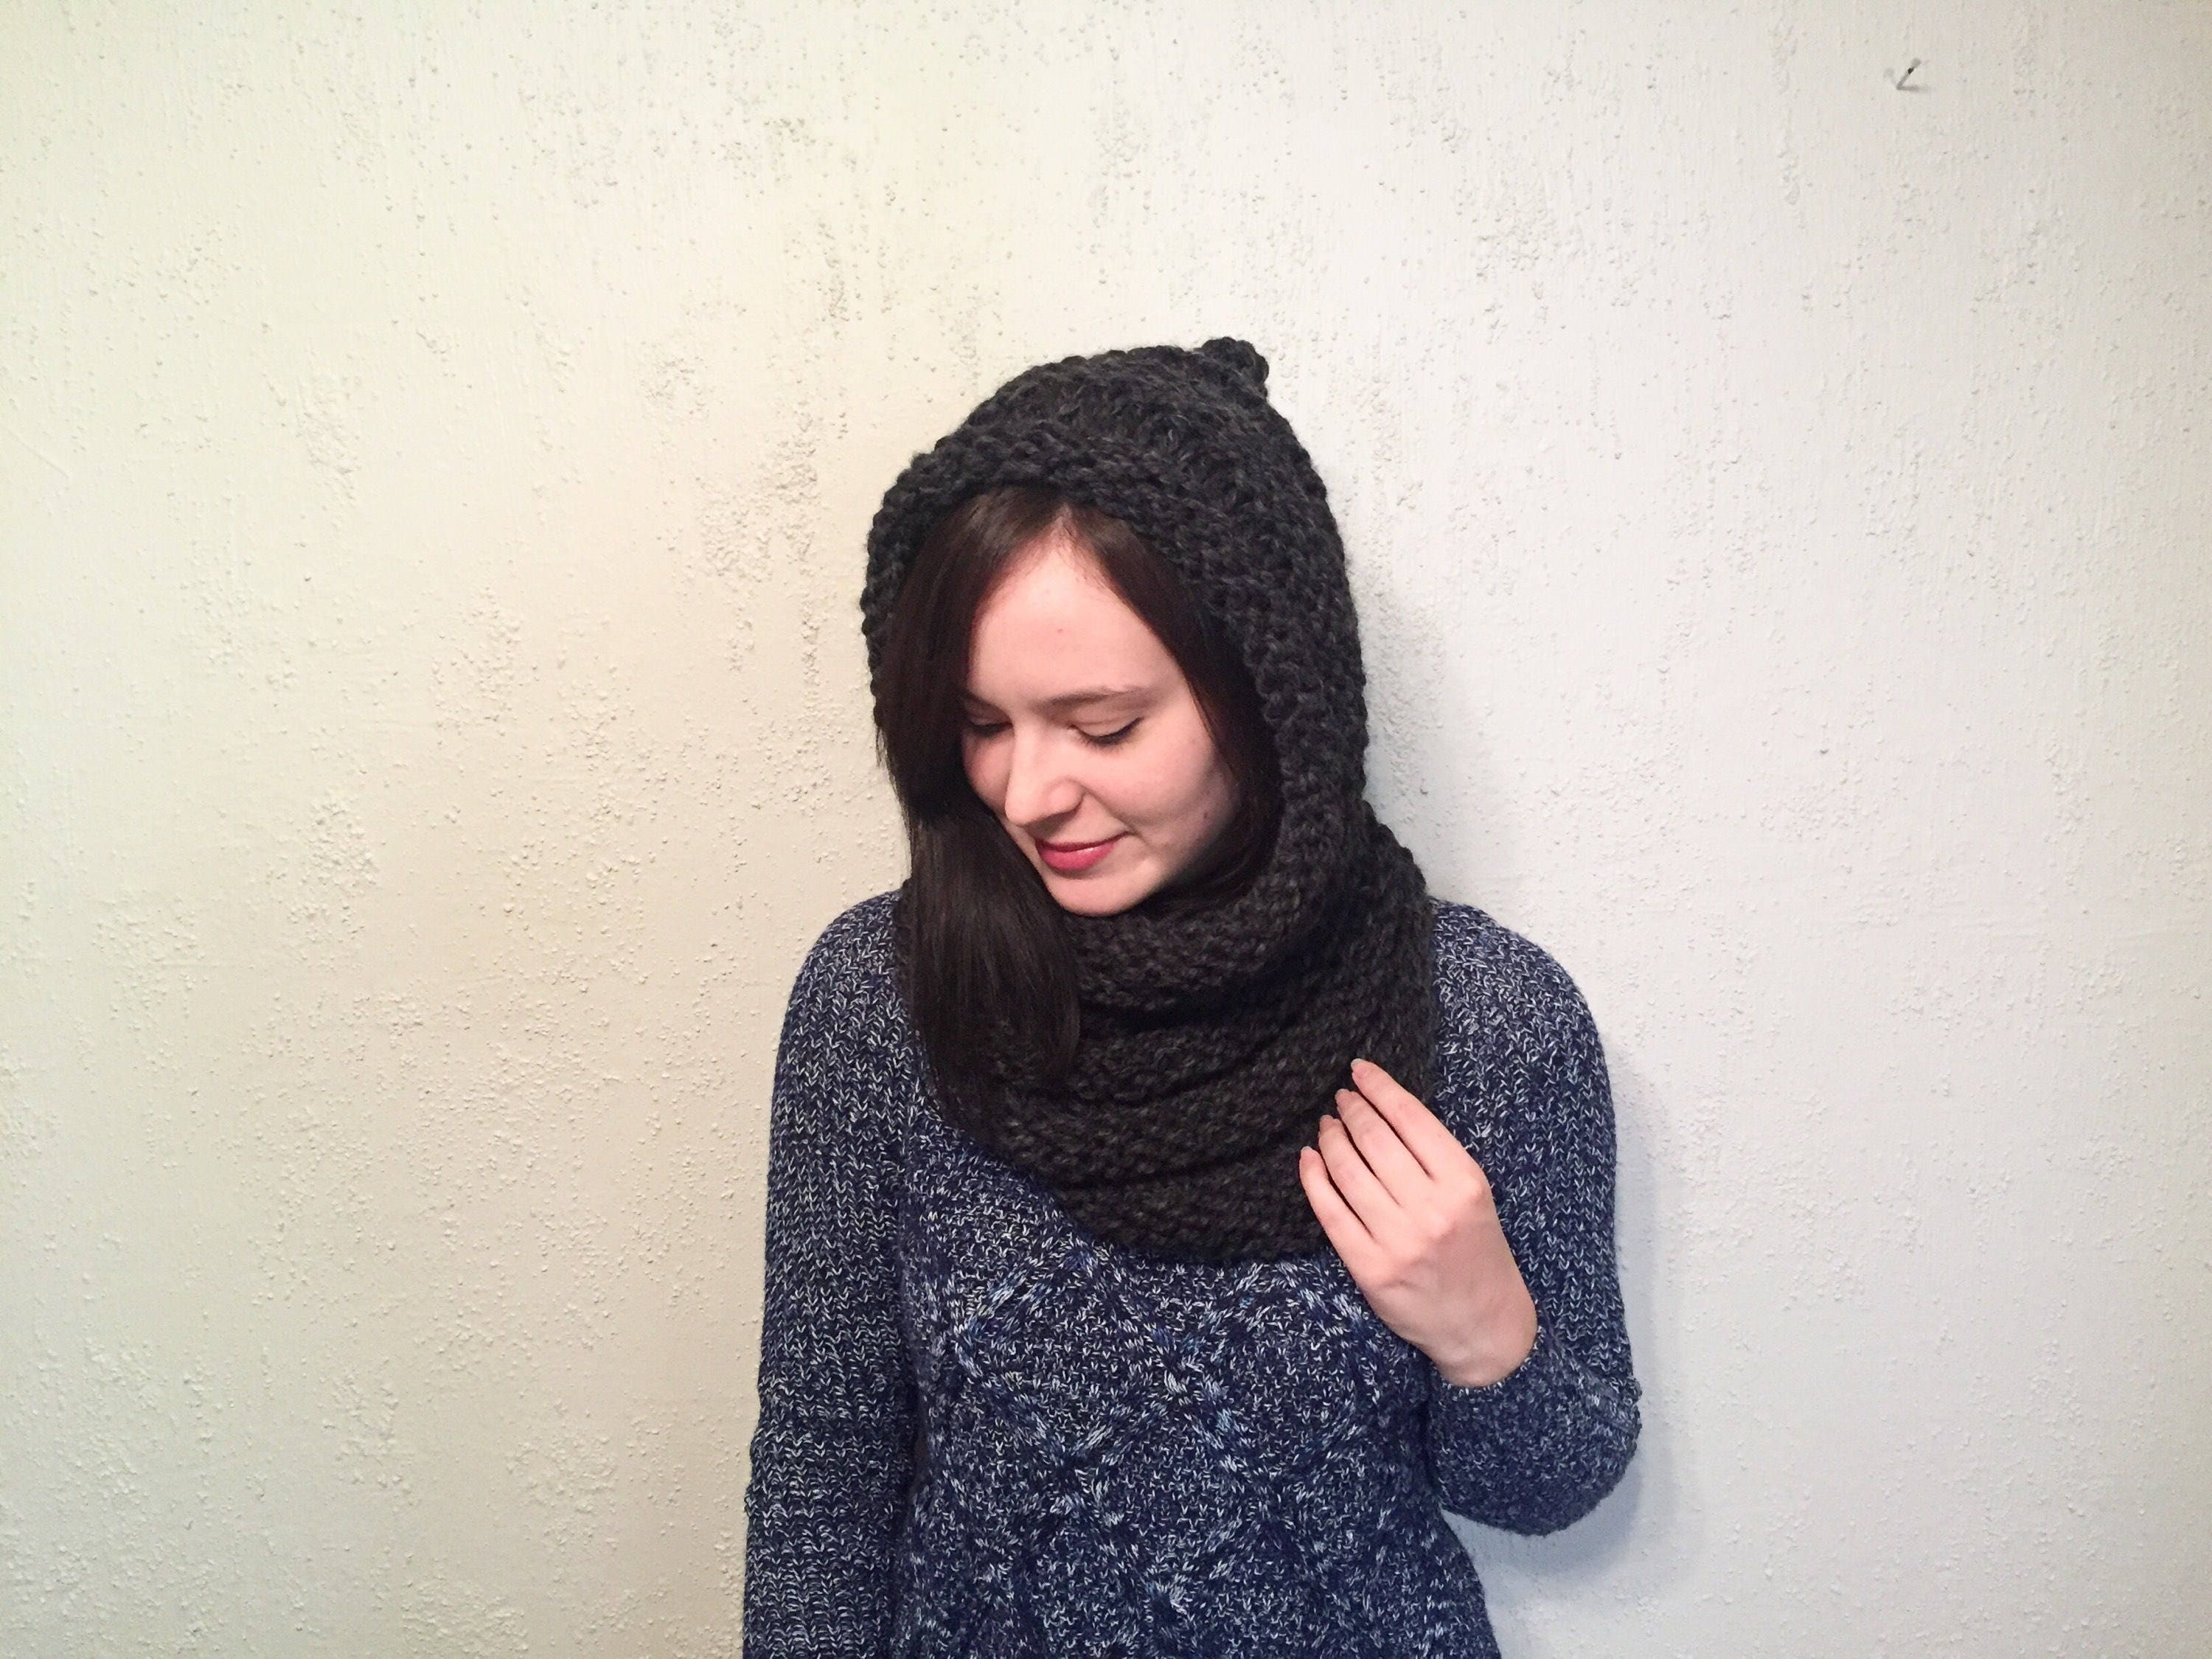 Women\'s Hooded Infinity Scarf // Chunky Knit Hooded Wrap Scarf ...